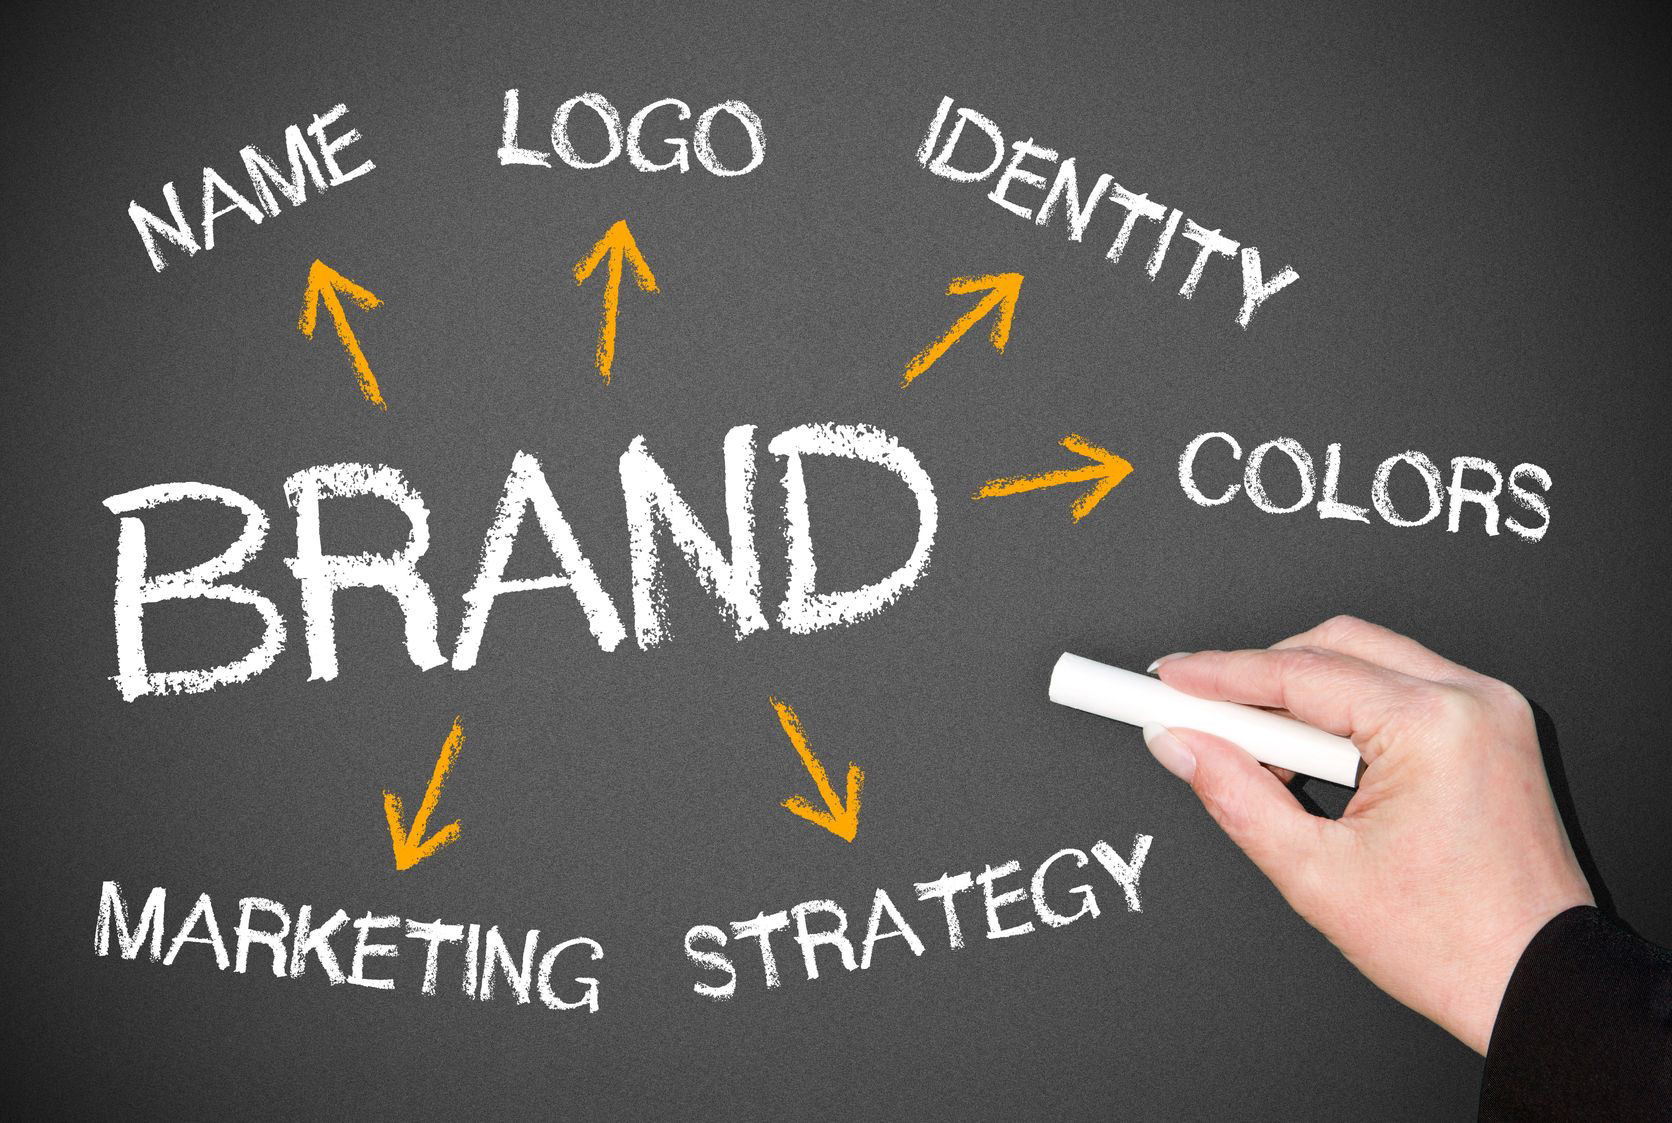 Growing Fashion Brands in India and What Makes the Apparel Industry So Lucrative